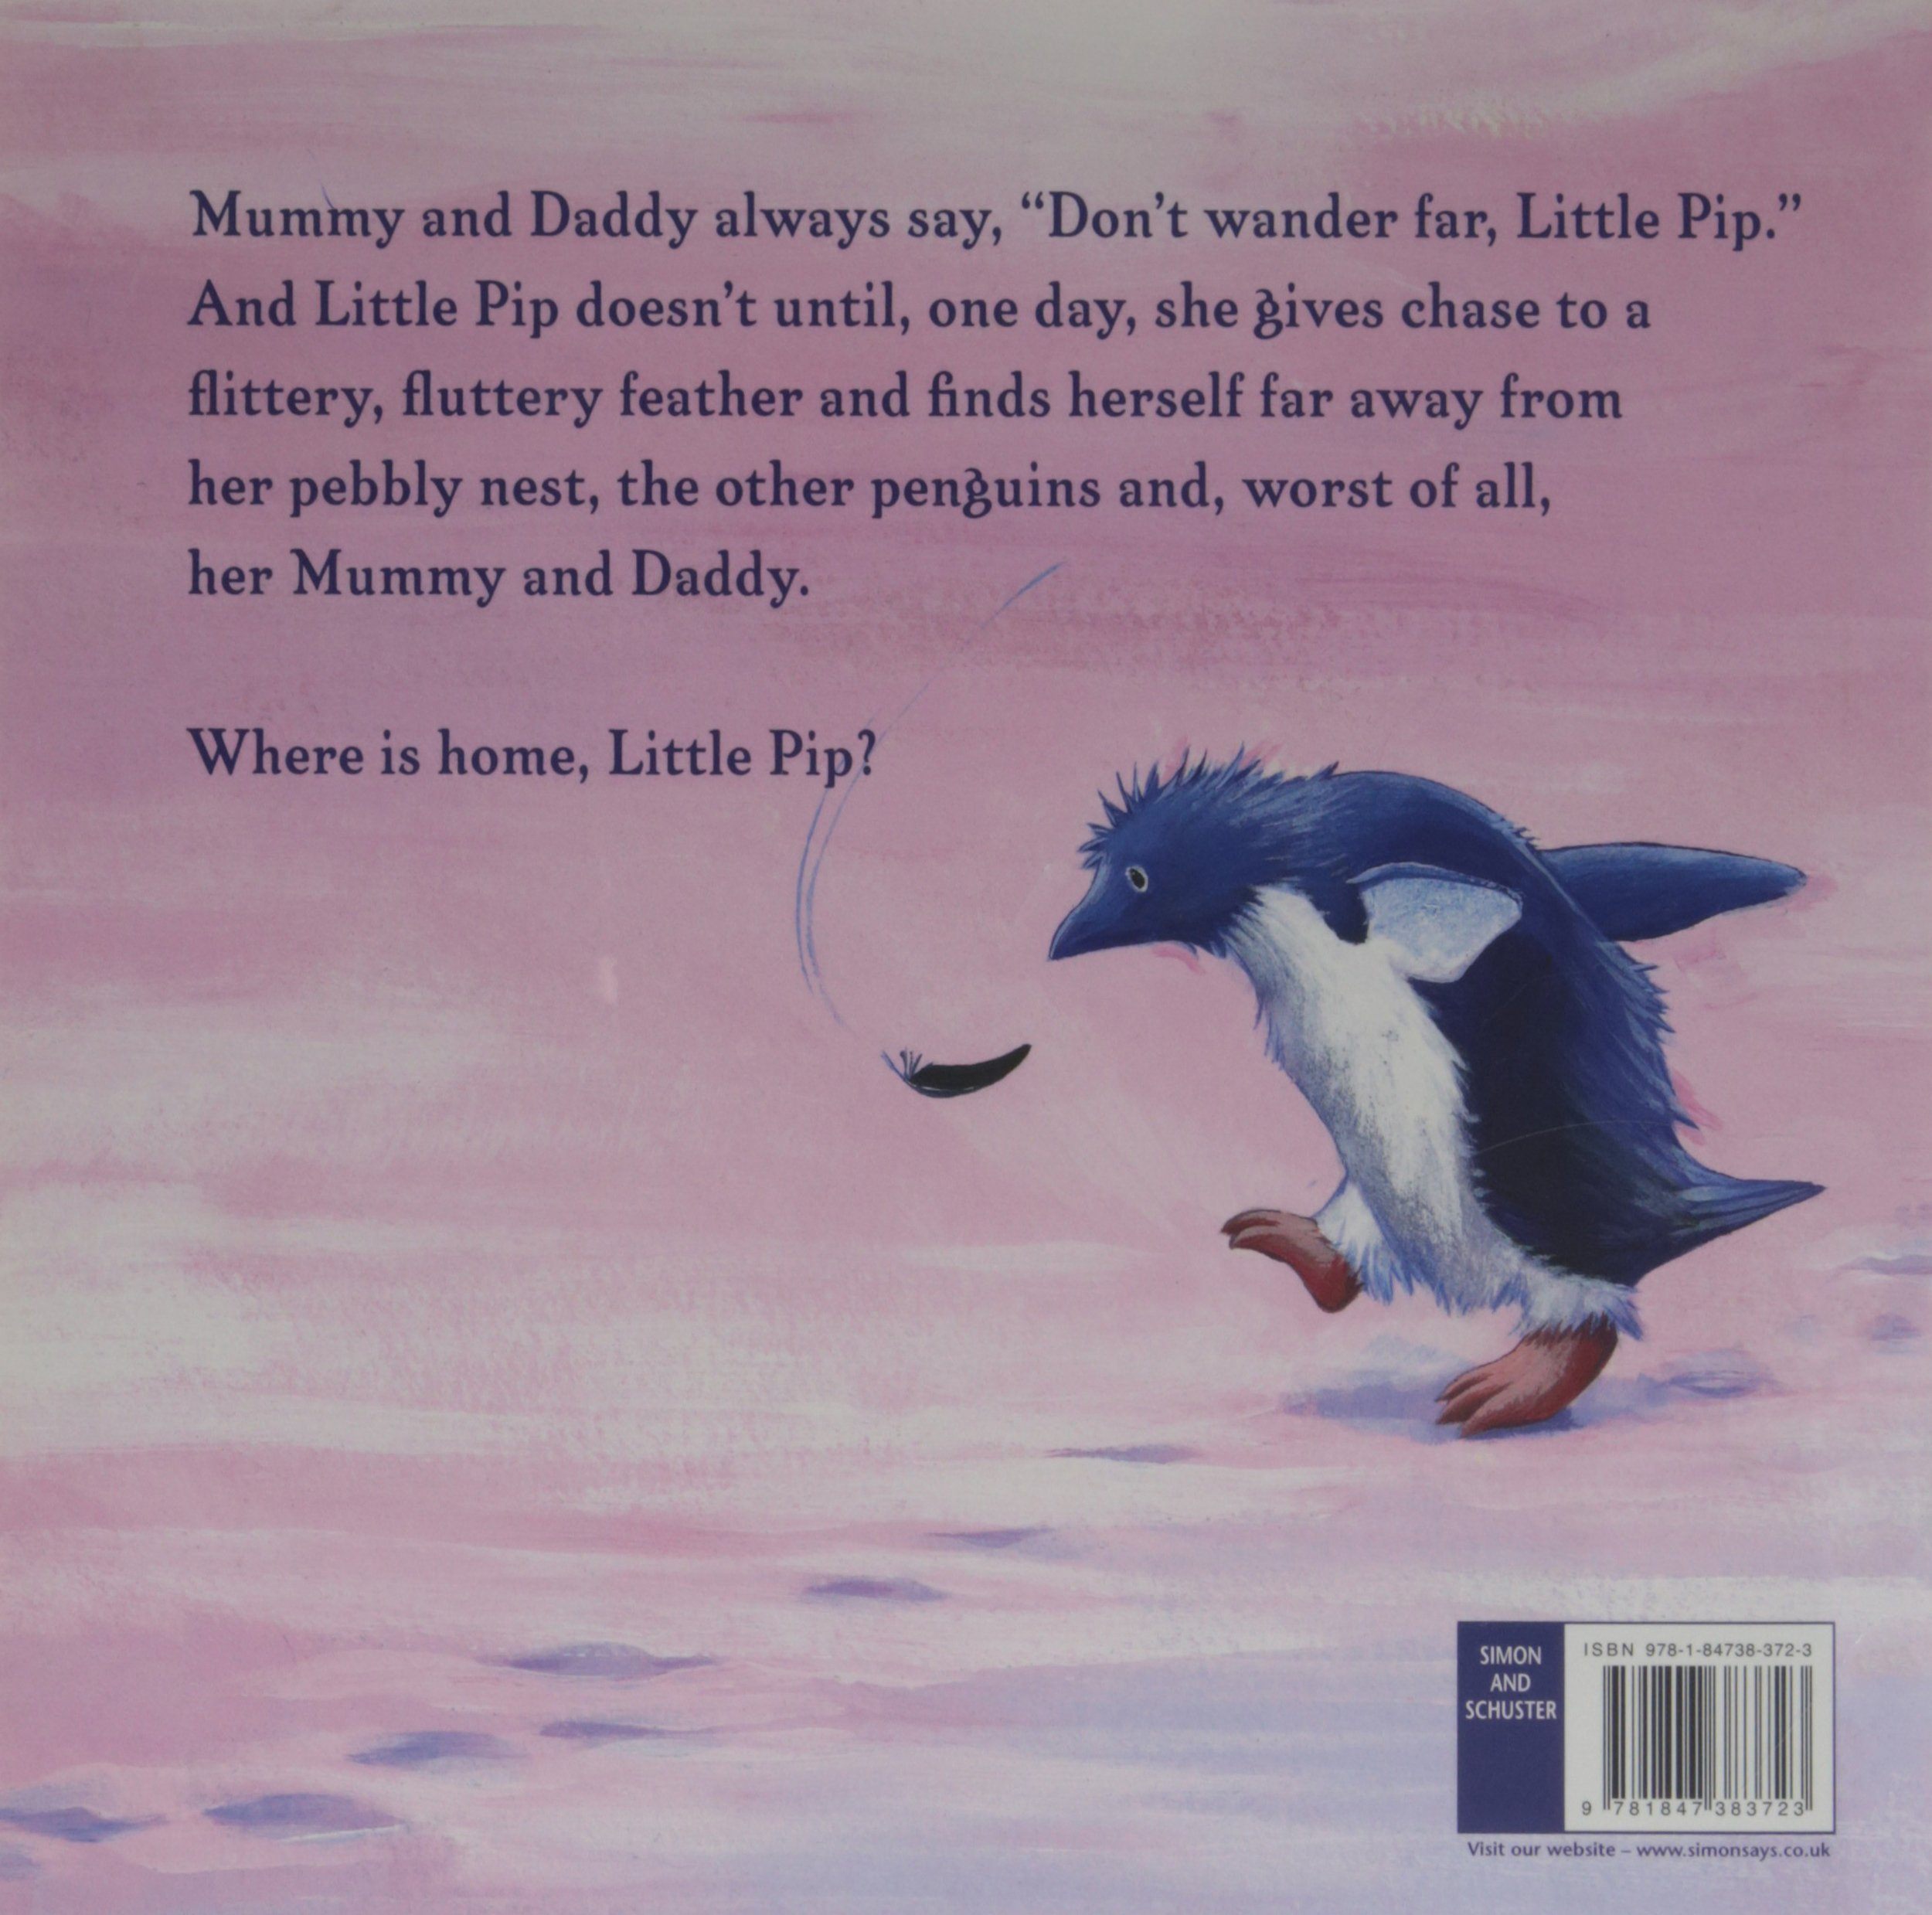 buy where is home little pip book online at low prices in india